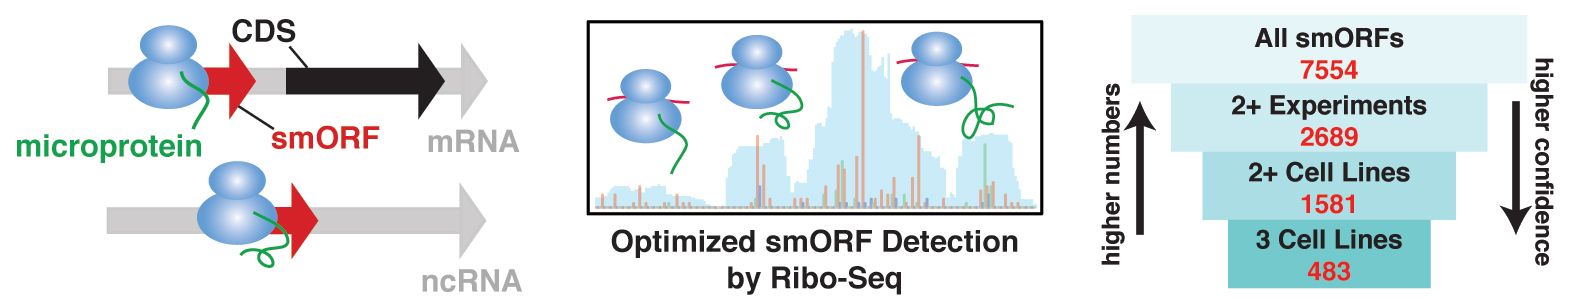 "This illustration represents the Saghatelian lab's method for finding genes known as small open reading frames (smORFs). The ""microproteins"" encoded by smORFs have been linked to immune function, cell stress and many other cellular processes, which suggests that detecting smORFs could lead scientists to new biomarkers and drug targets for human diseases."